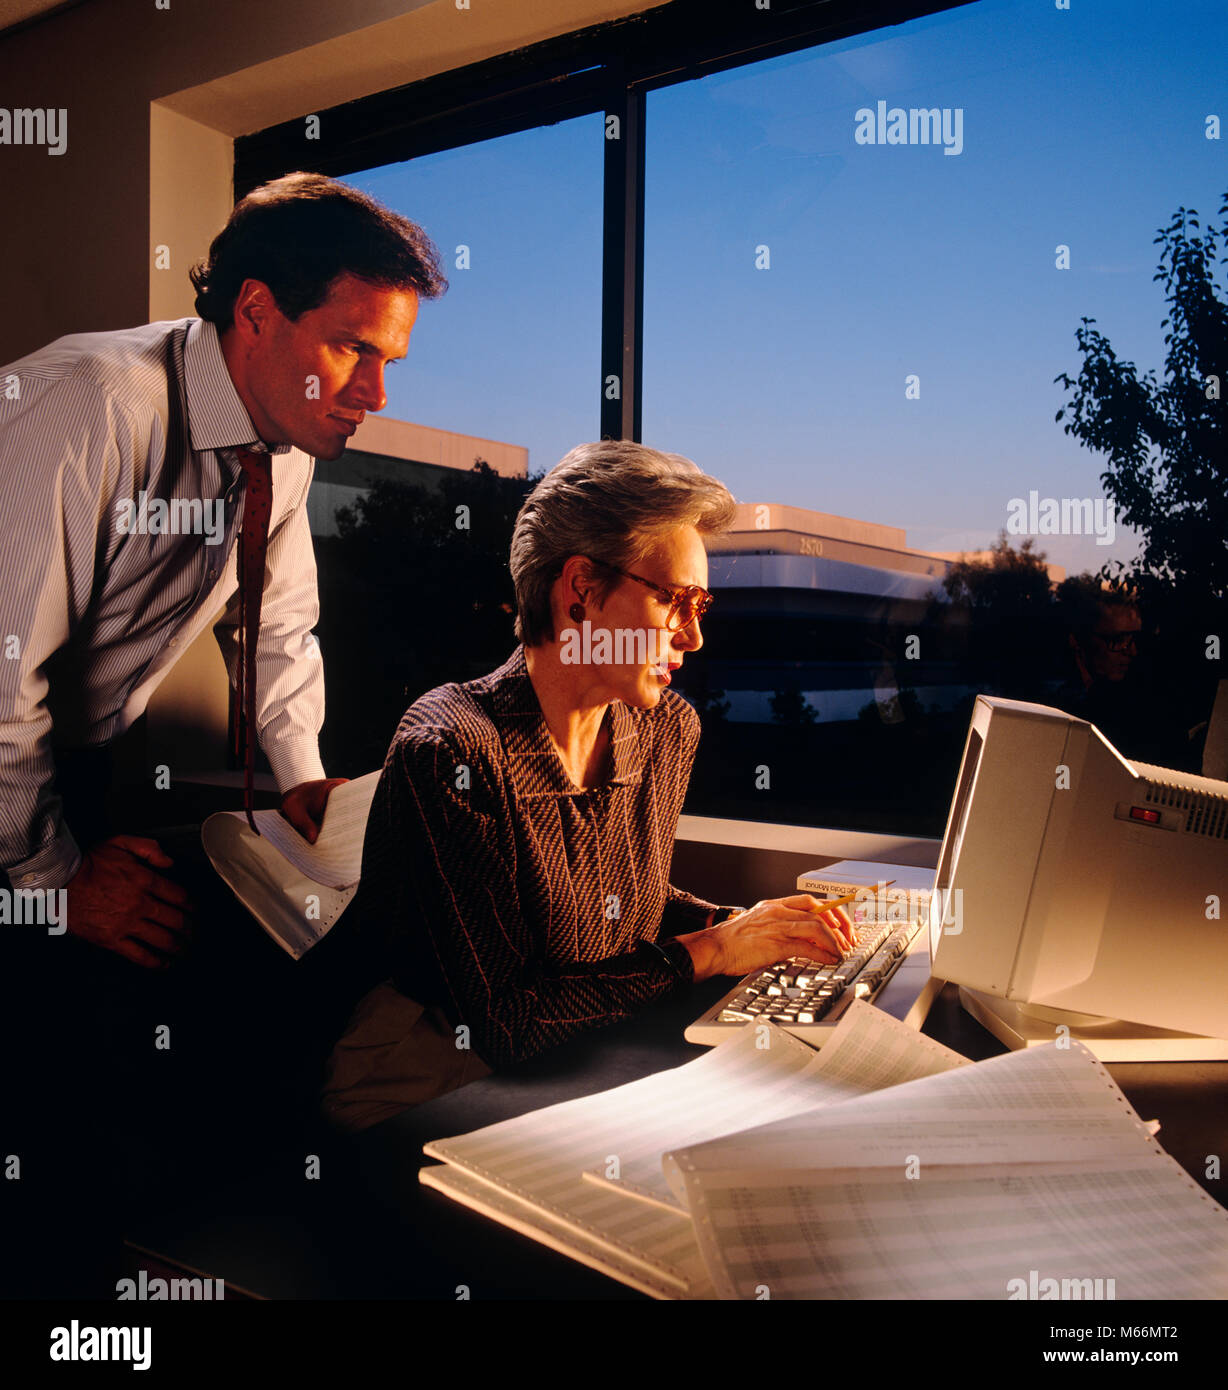 1980s 1990s MAN AND WOMAN WORKING WITH COMPUTER AT NIGHT - ko3143 KAR001 HARS CAUCASIAN LIFESTYLE FEMALES JOBS GROWNUP - Stock Image